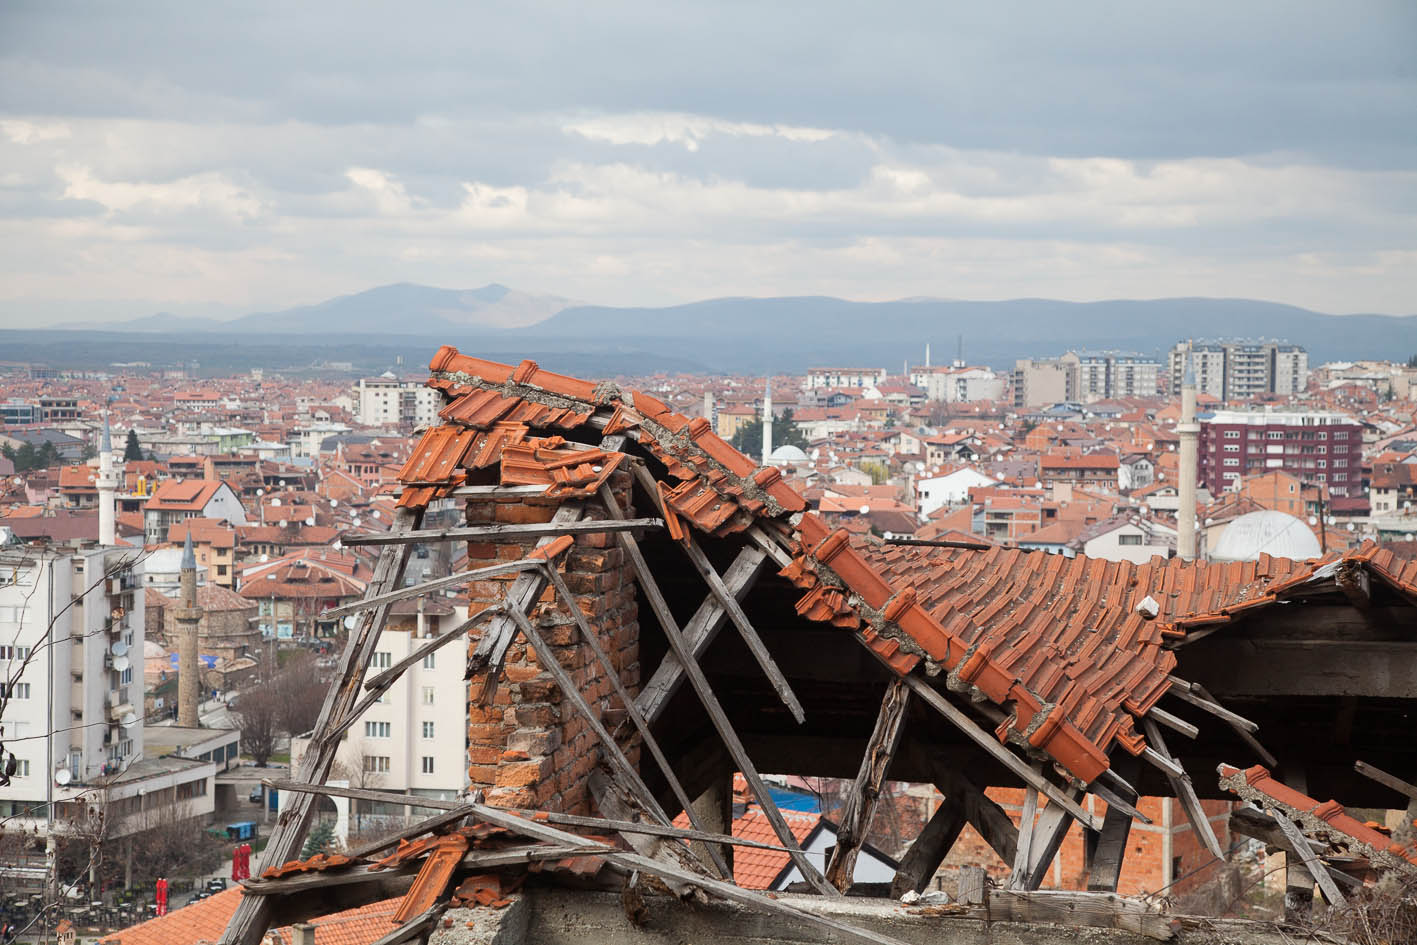 Destroyed Serbian houses all along the way...